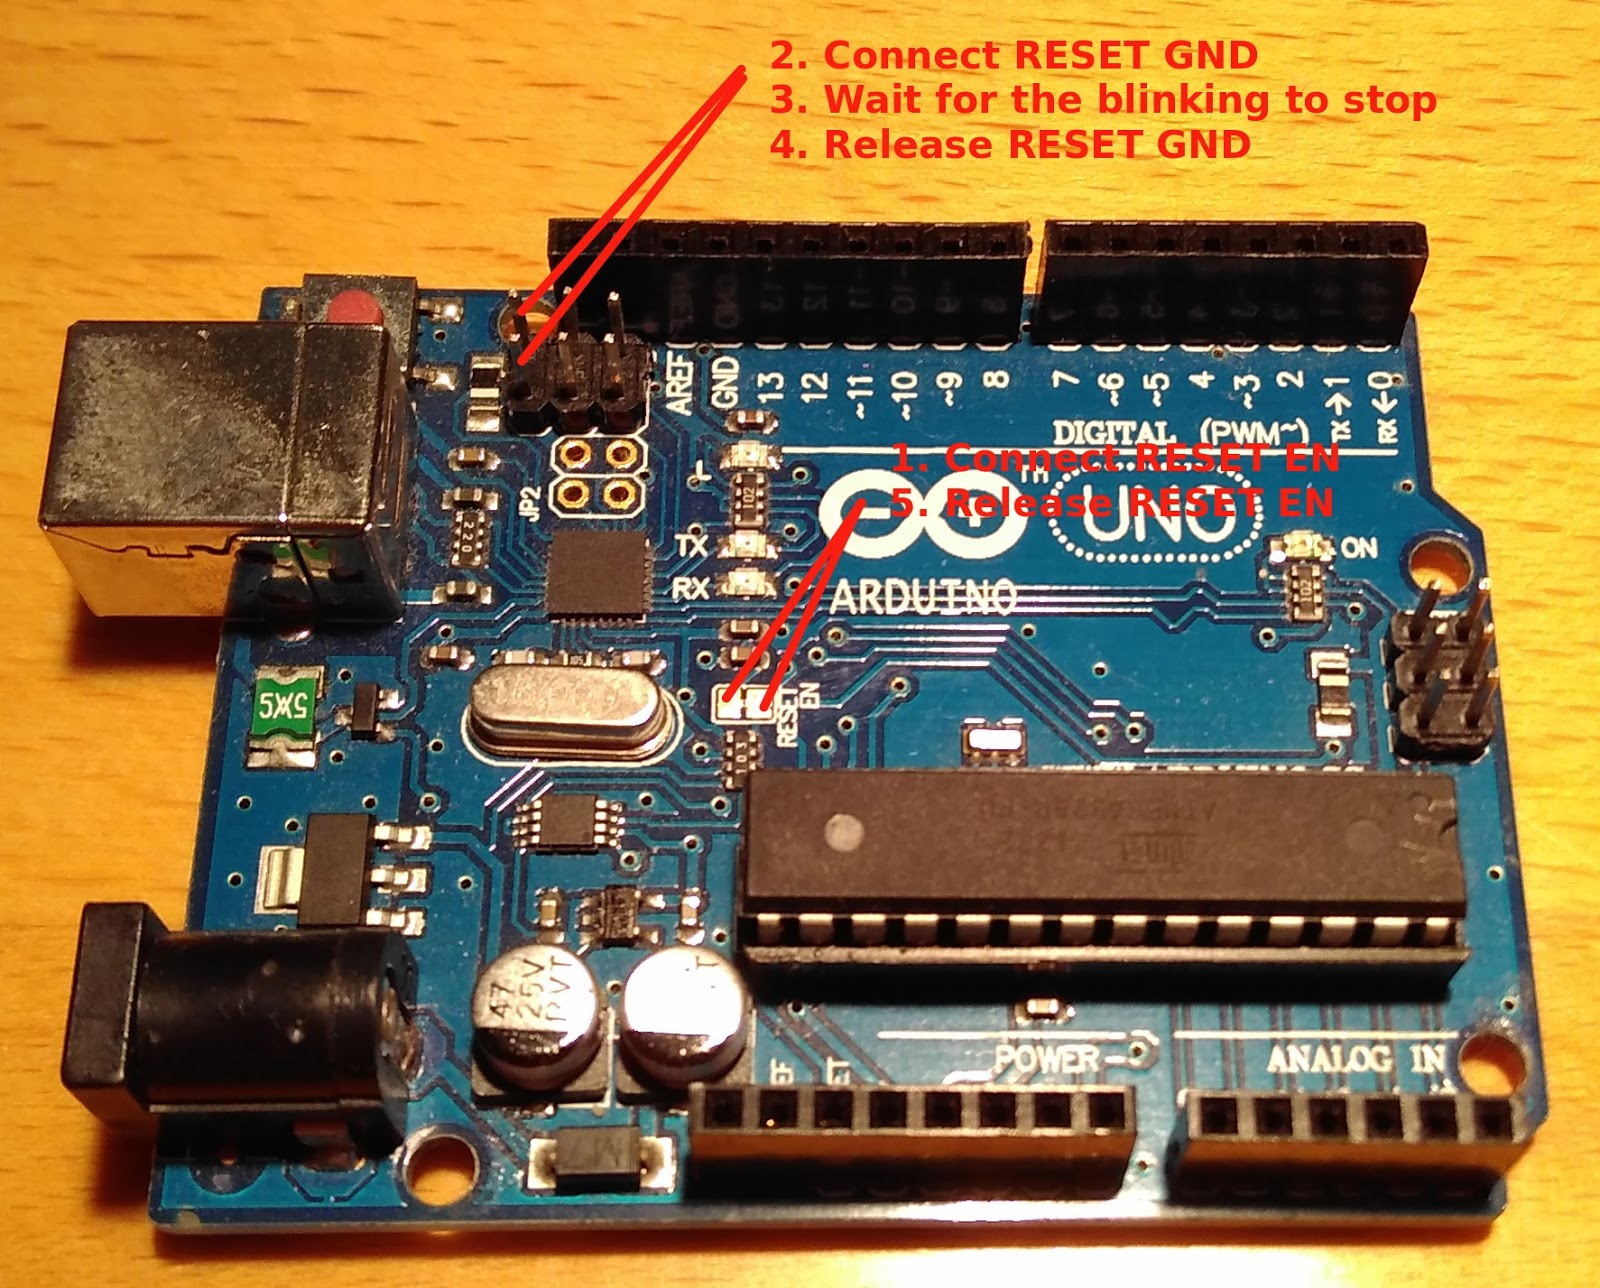 Limitless: Turn Arduino Uno into keyboard